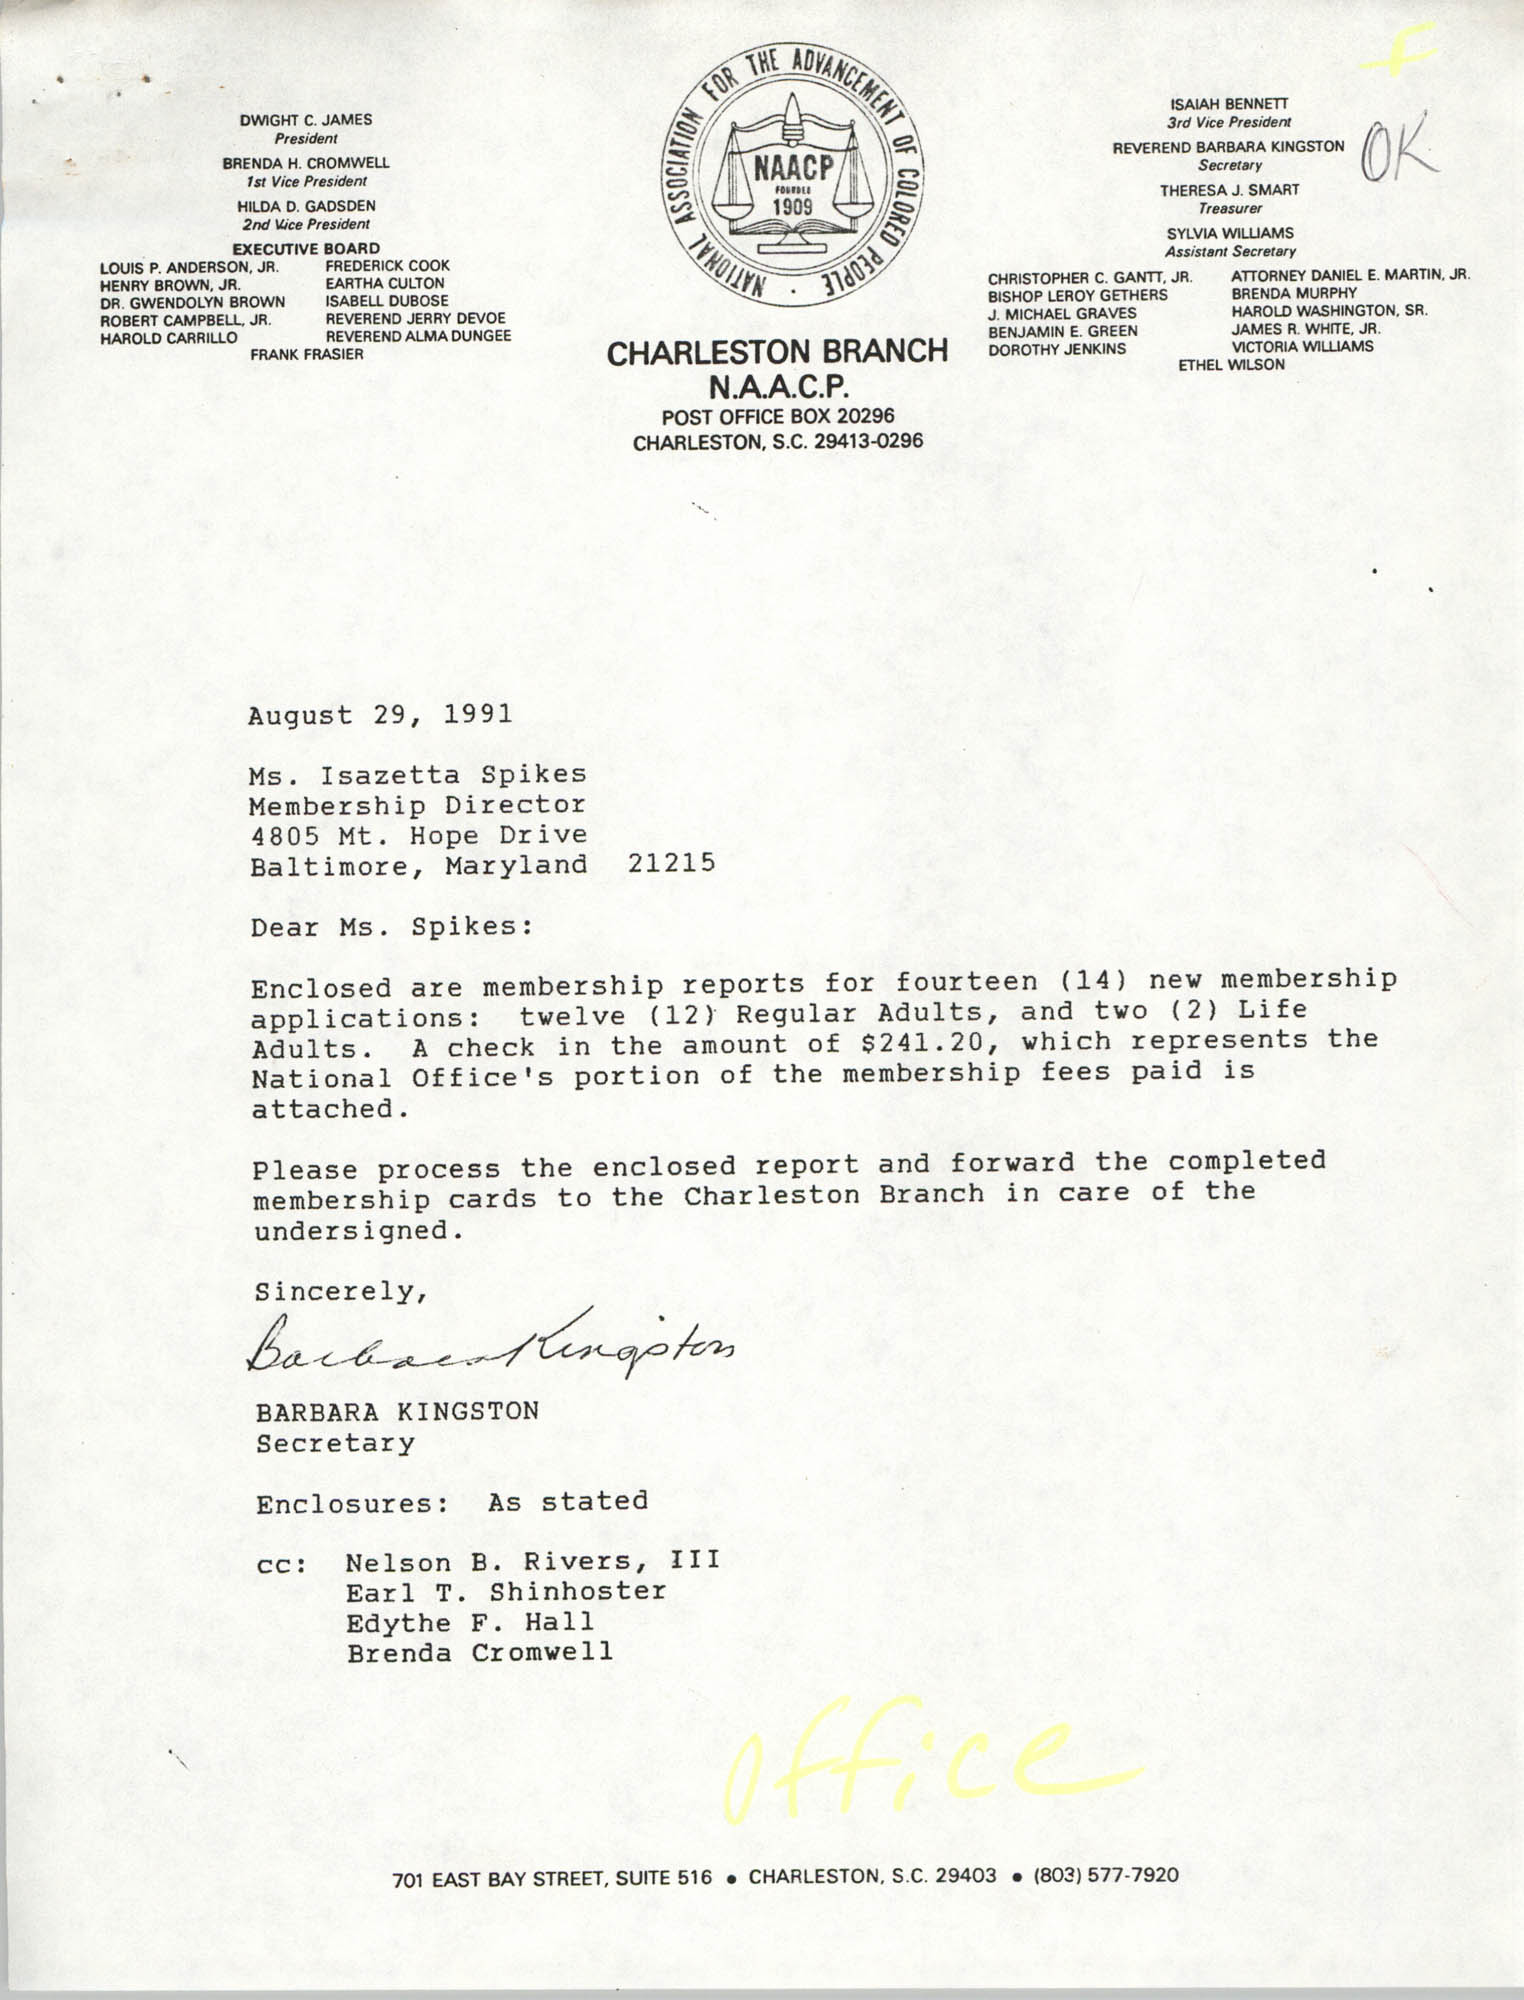 Letter from Barbara Kingston to Isazetta Spikes, August 29, 1991